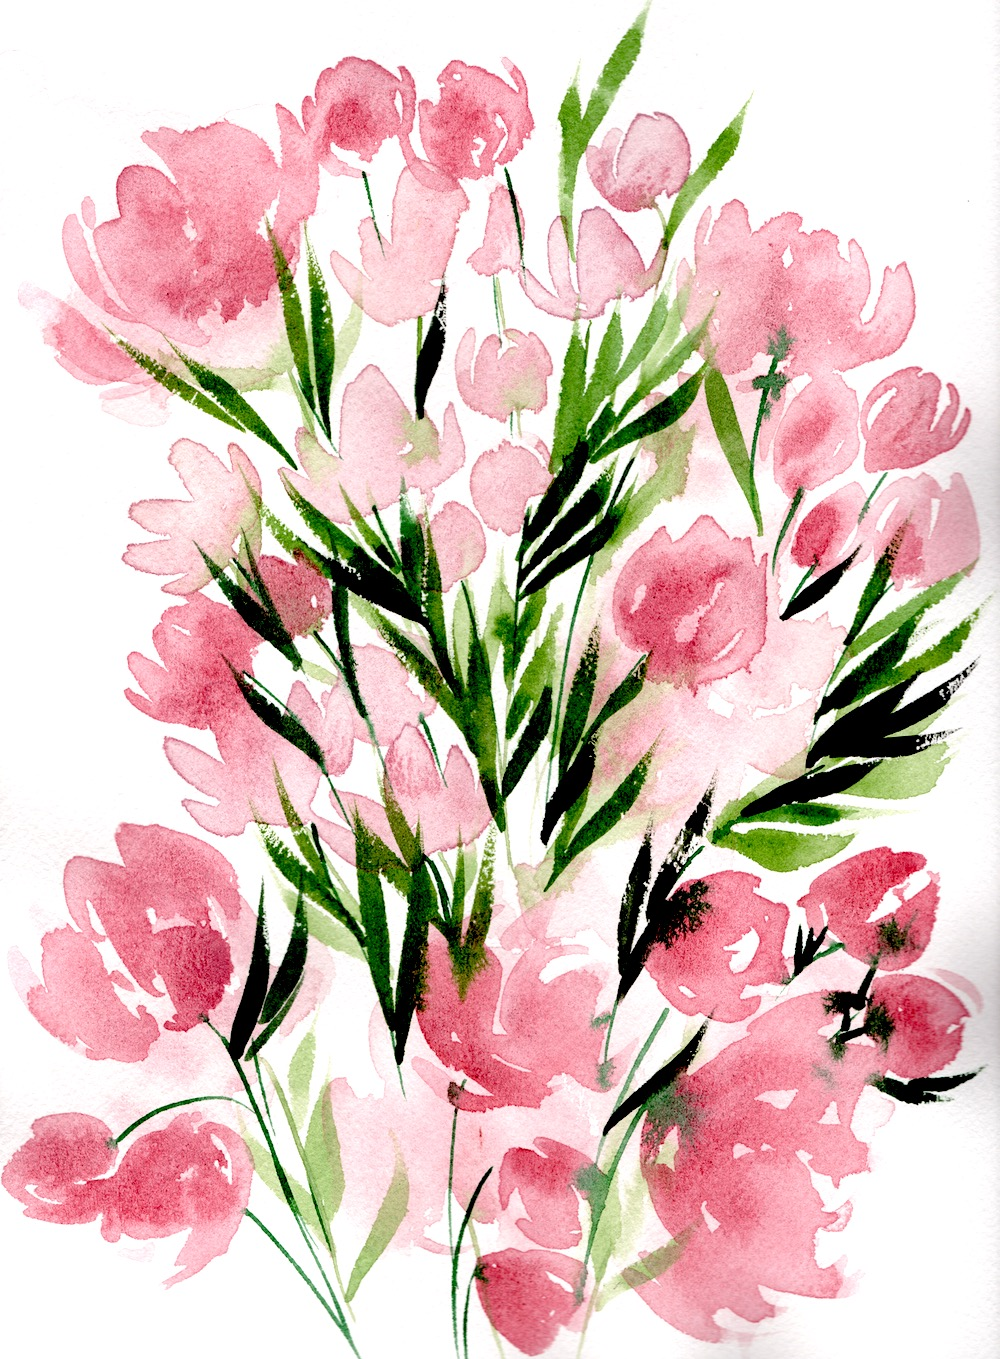 Pale pink watercolour flowers with green leaves